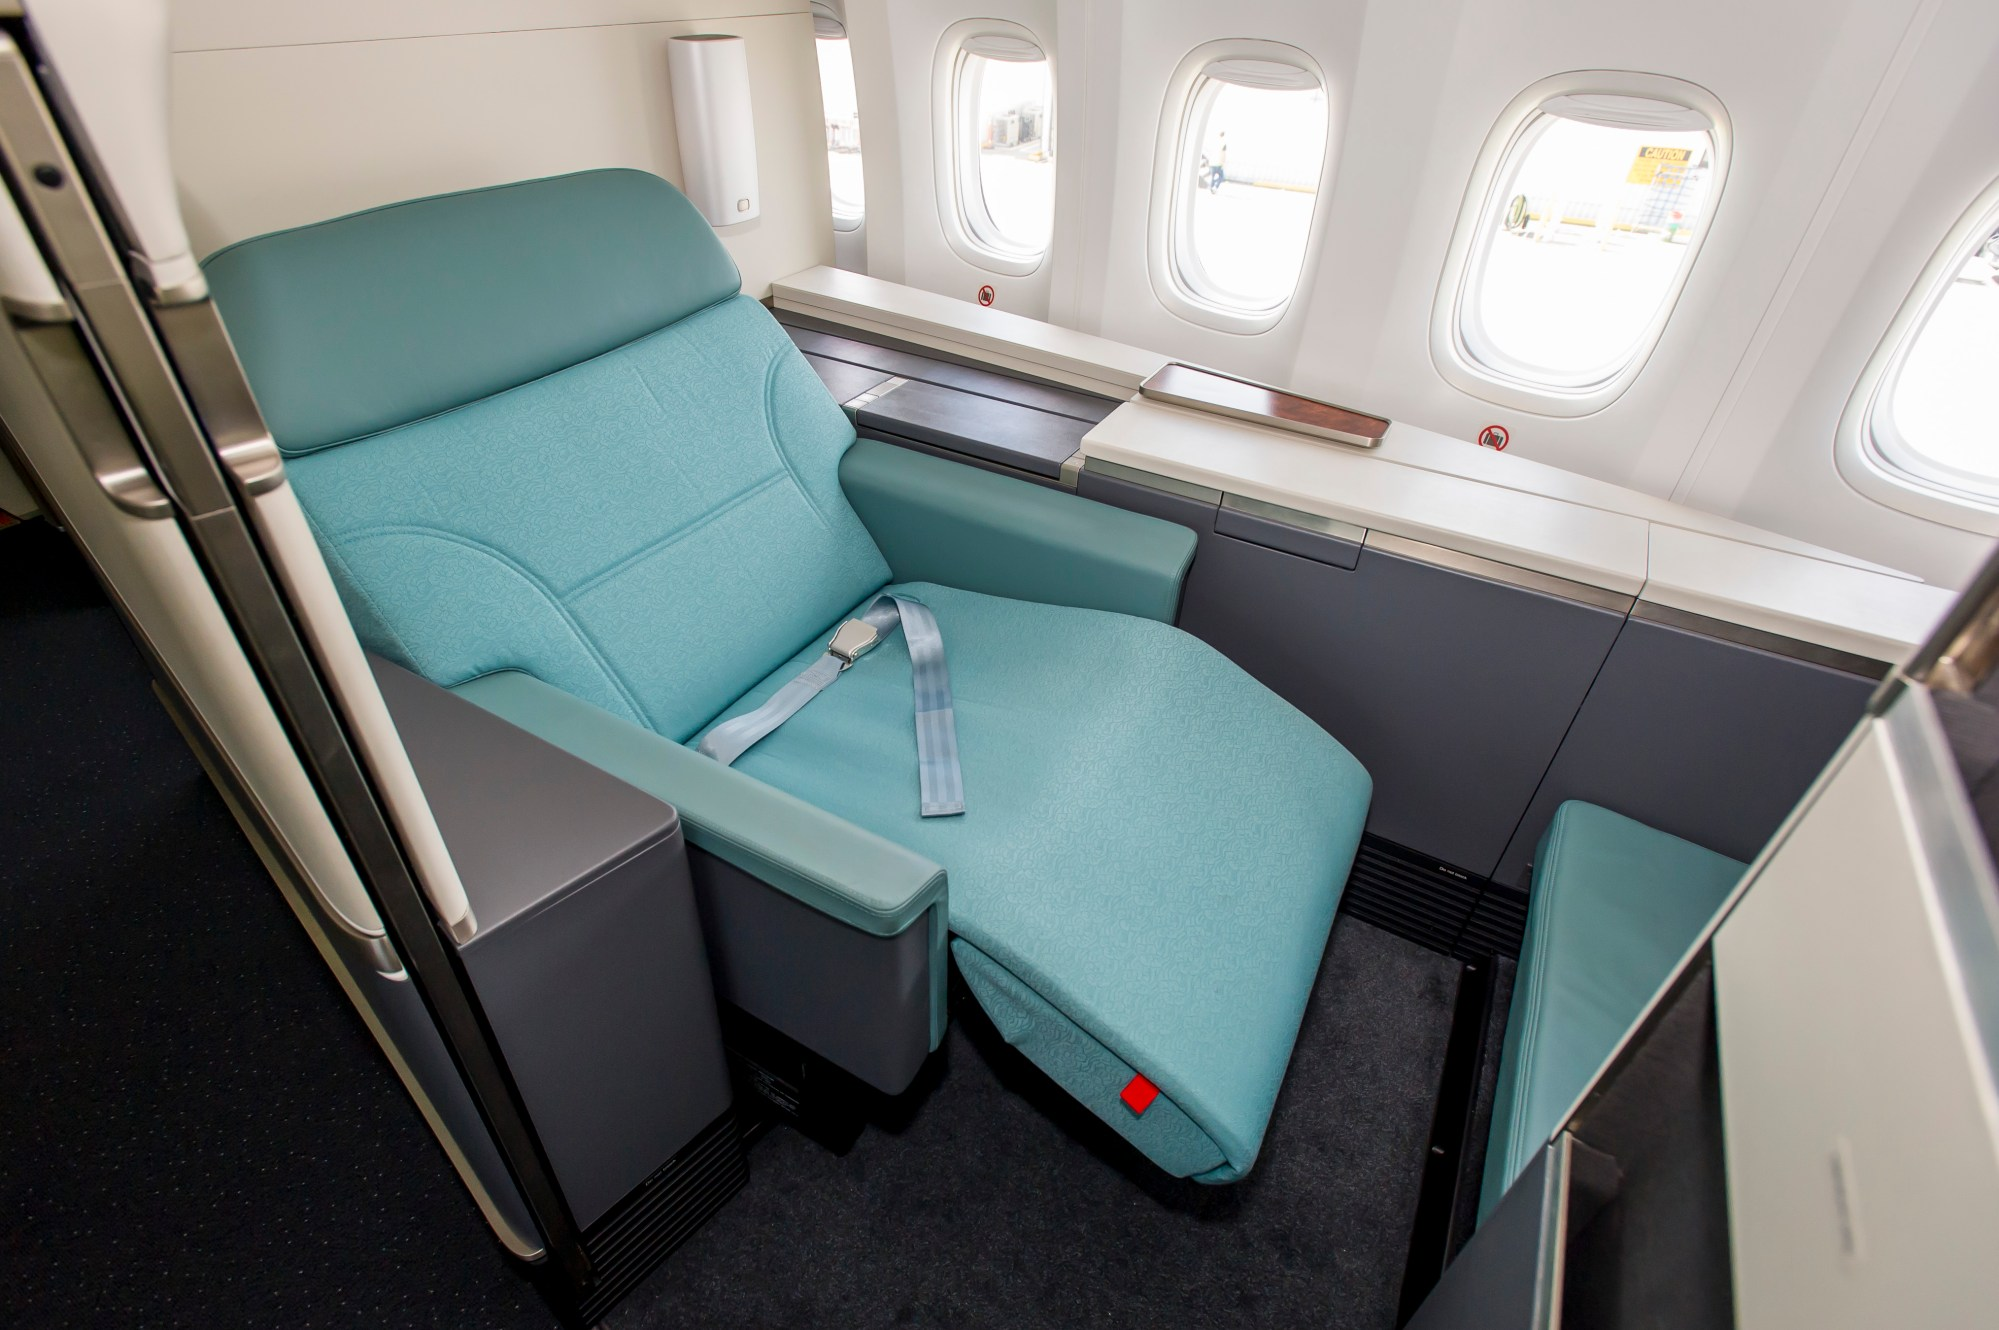 hight resolution of  suites 2 0 designed with a sliding door and higher partitions to provide added privacy for passengers we have some exclusive shots of the new interior